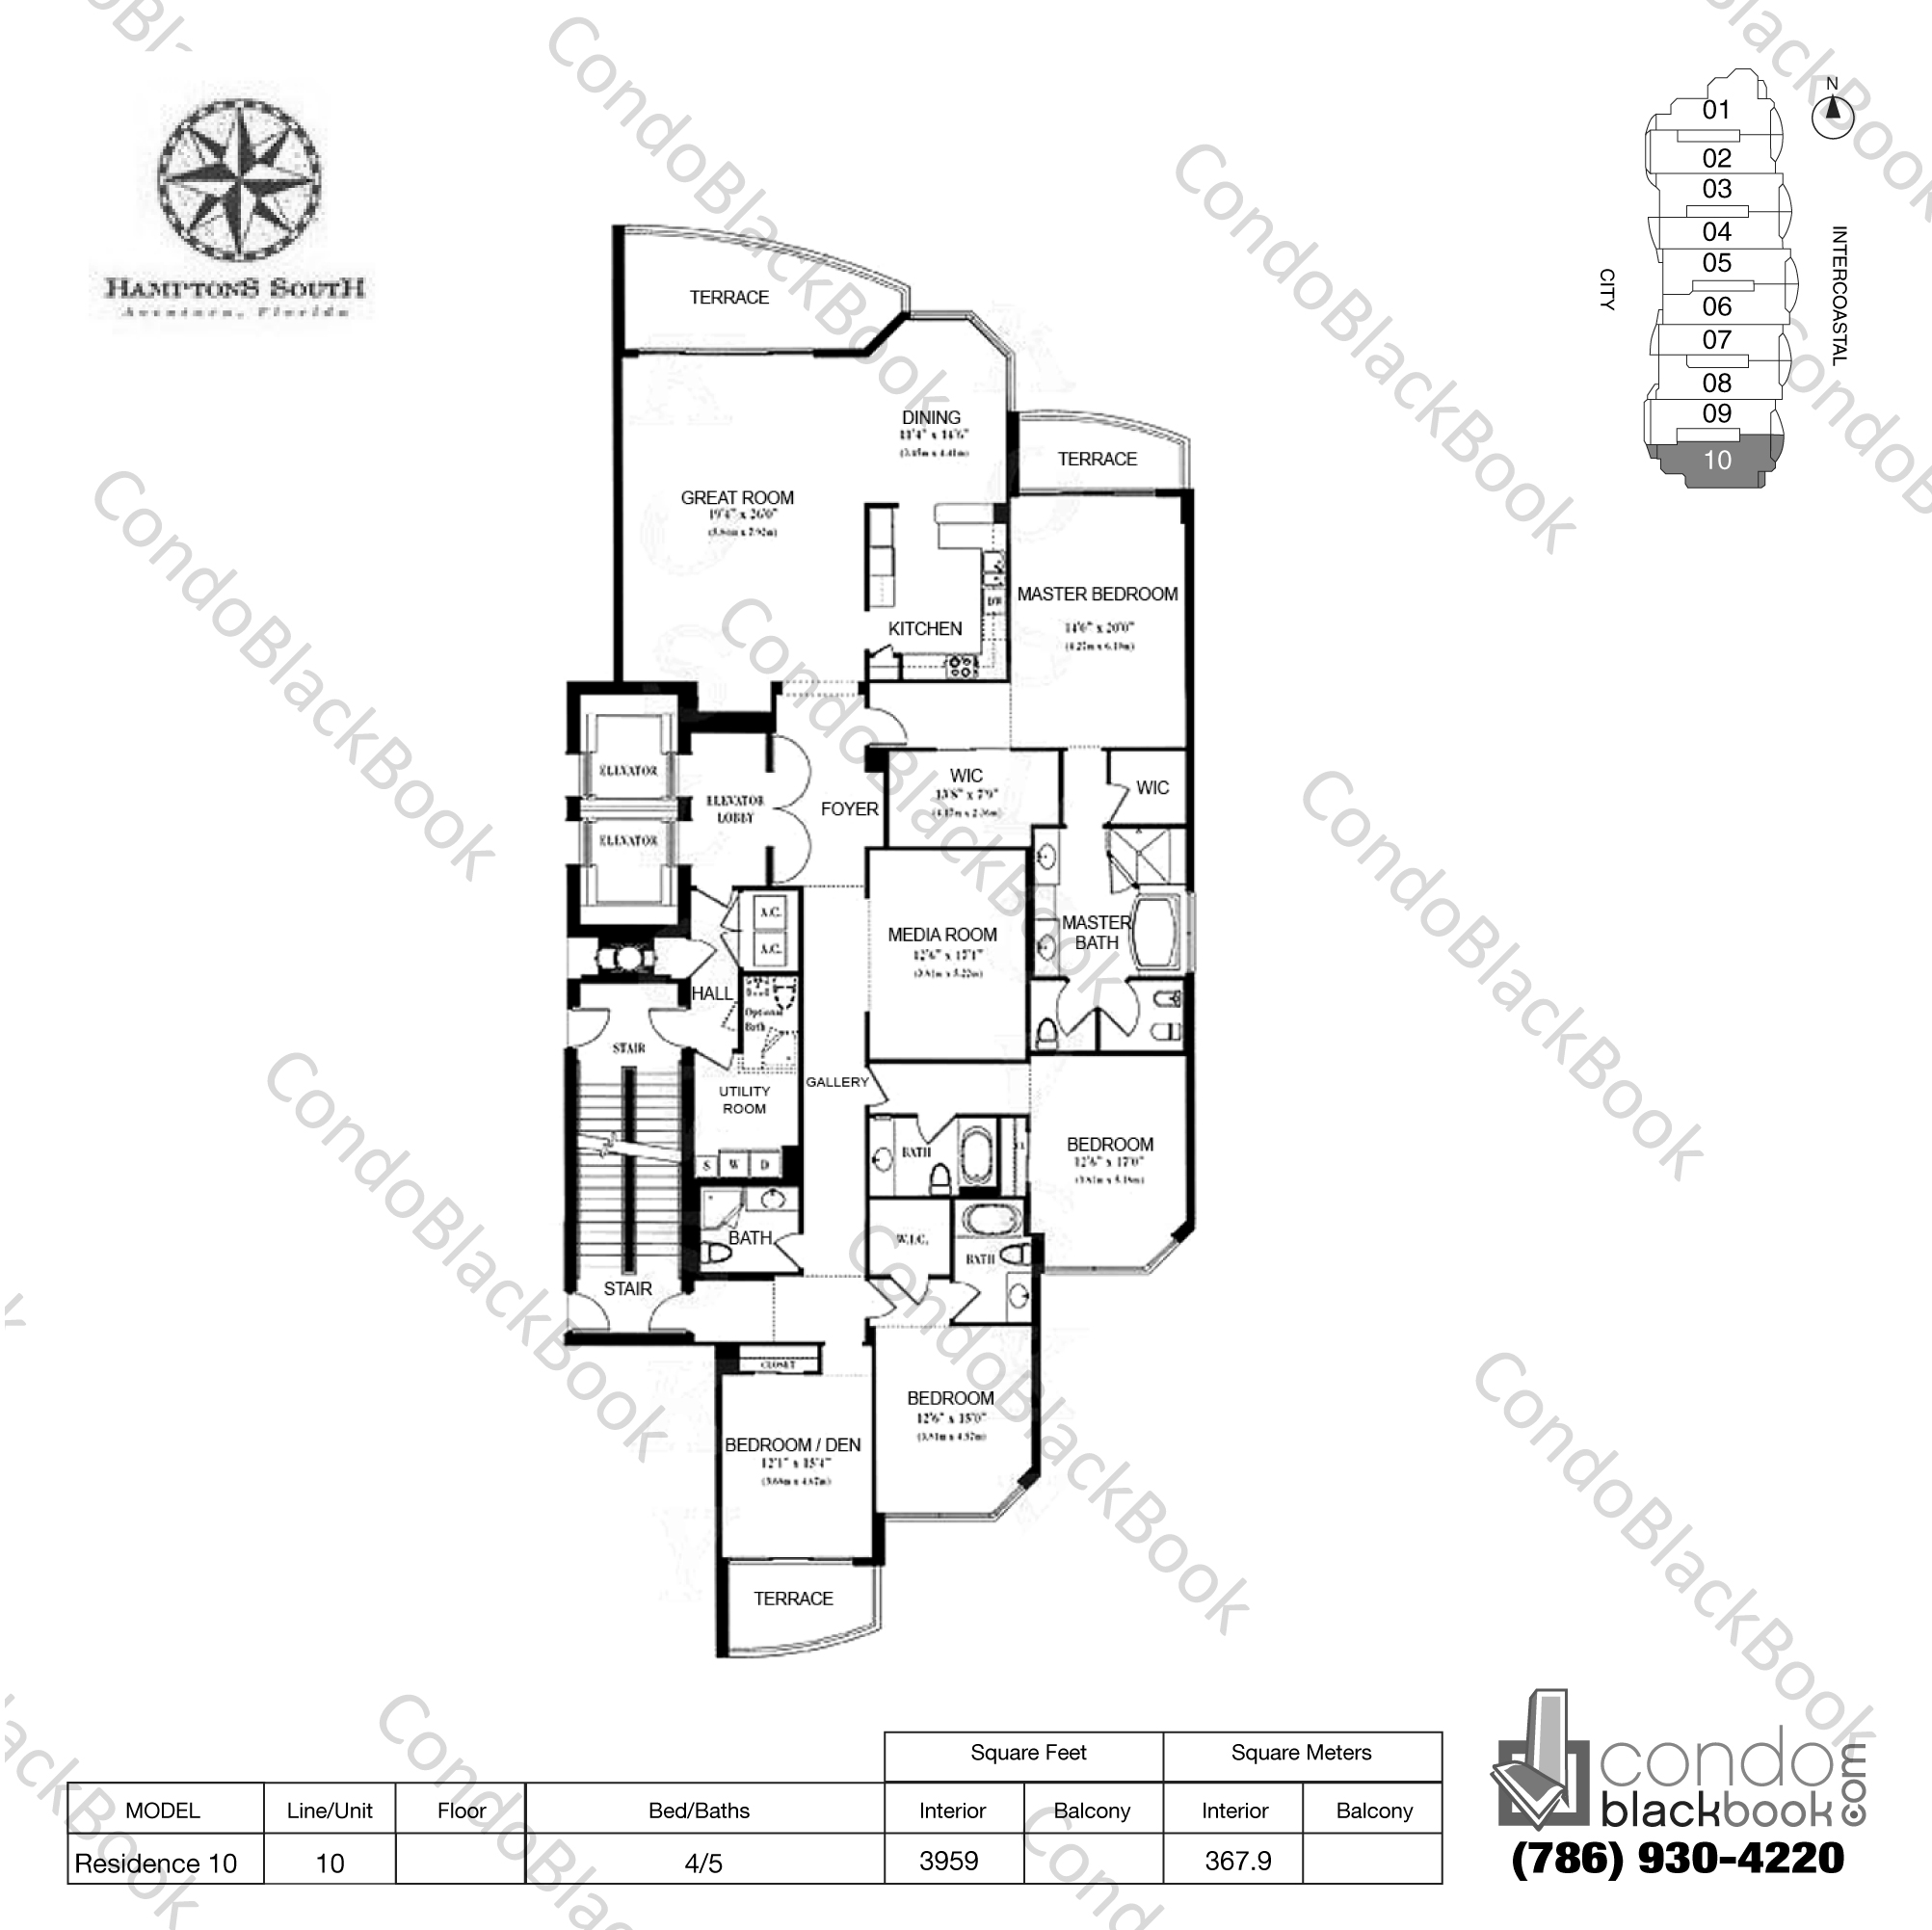 Floor plan for Hamptons South Aventura, model Residence 10, line 10, 4/5 bedrooms, 3959 sq ft